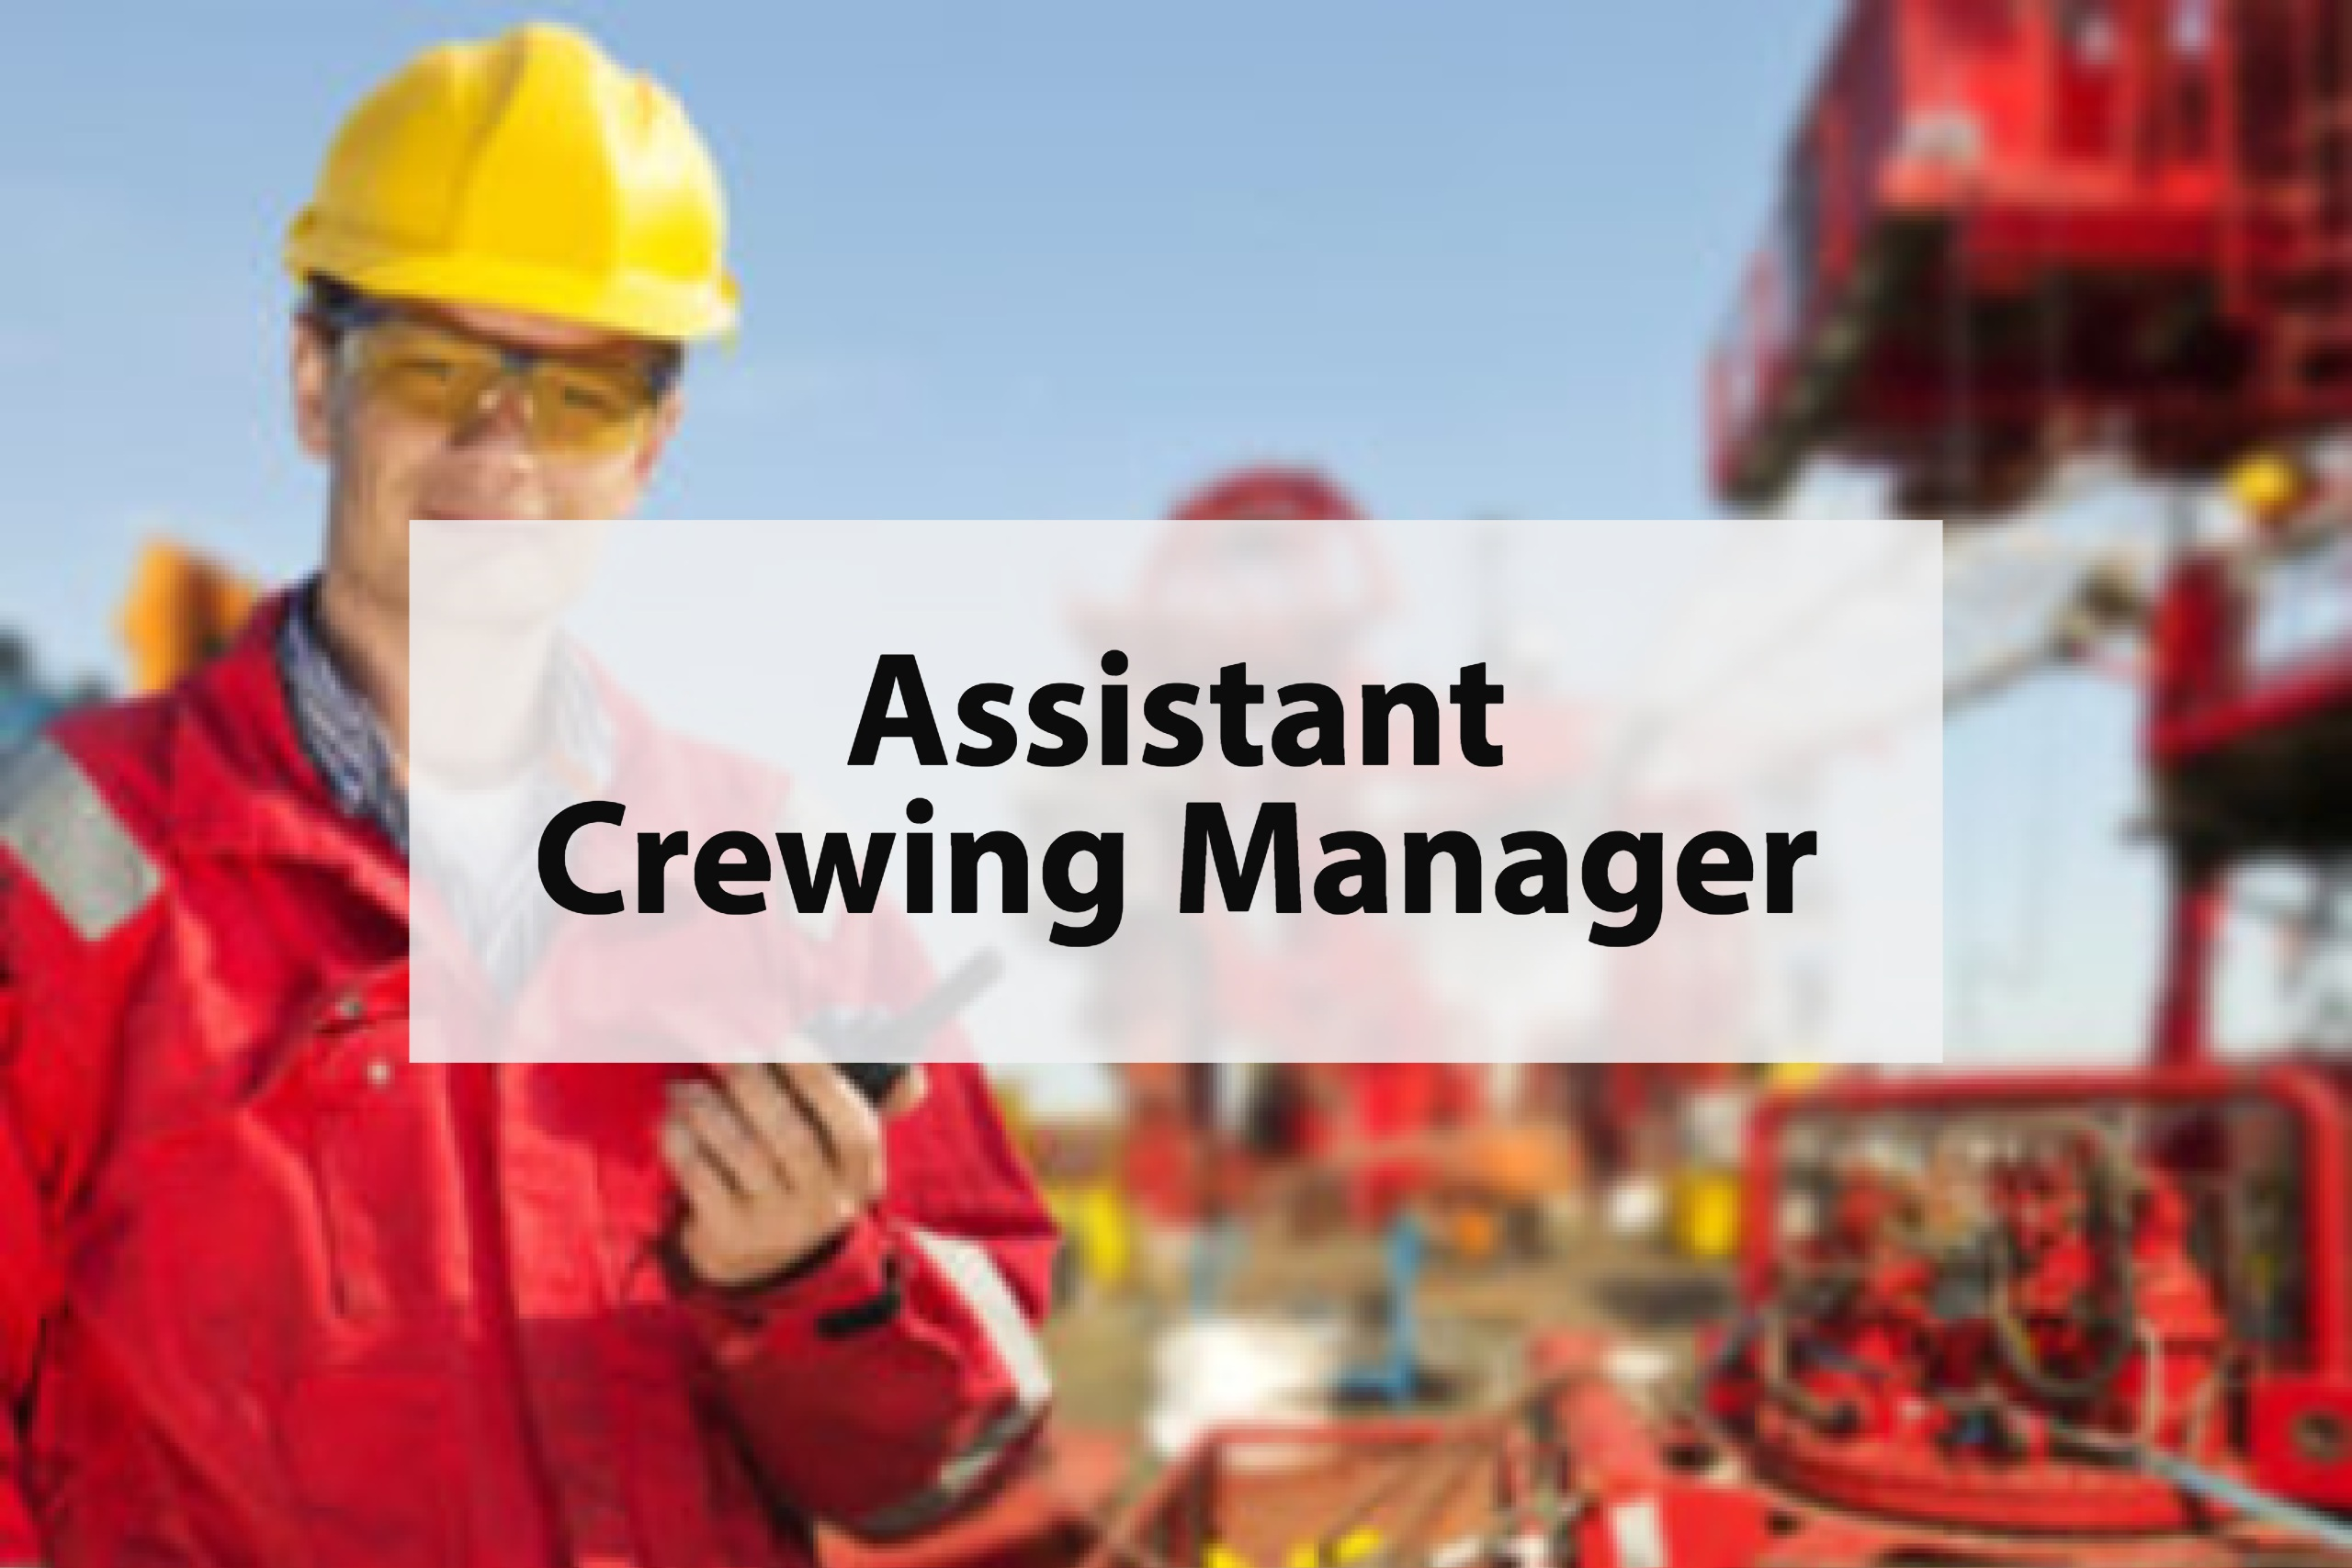 Assistant Crewing Manager - Ignition Global